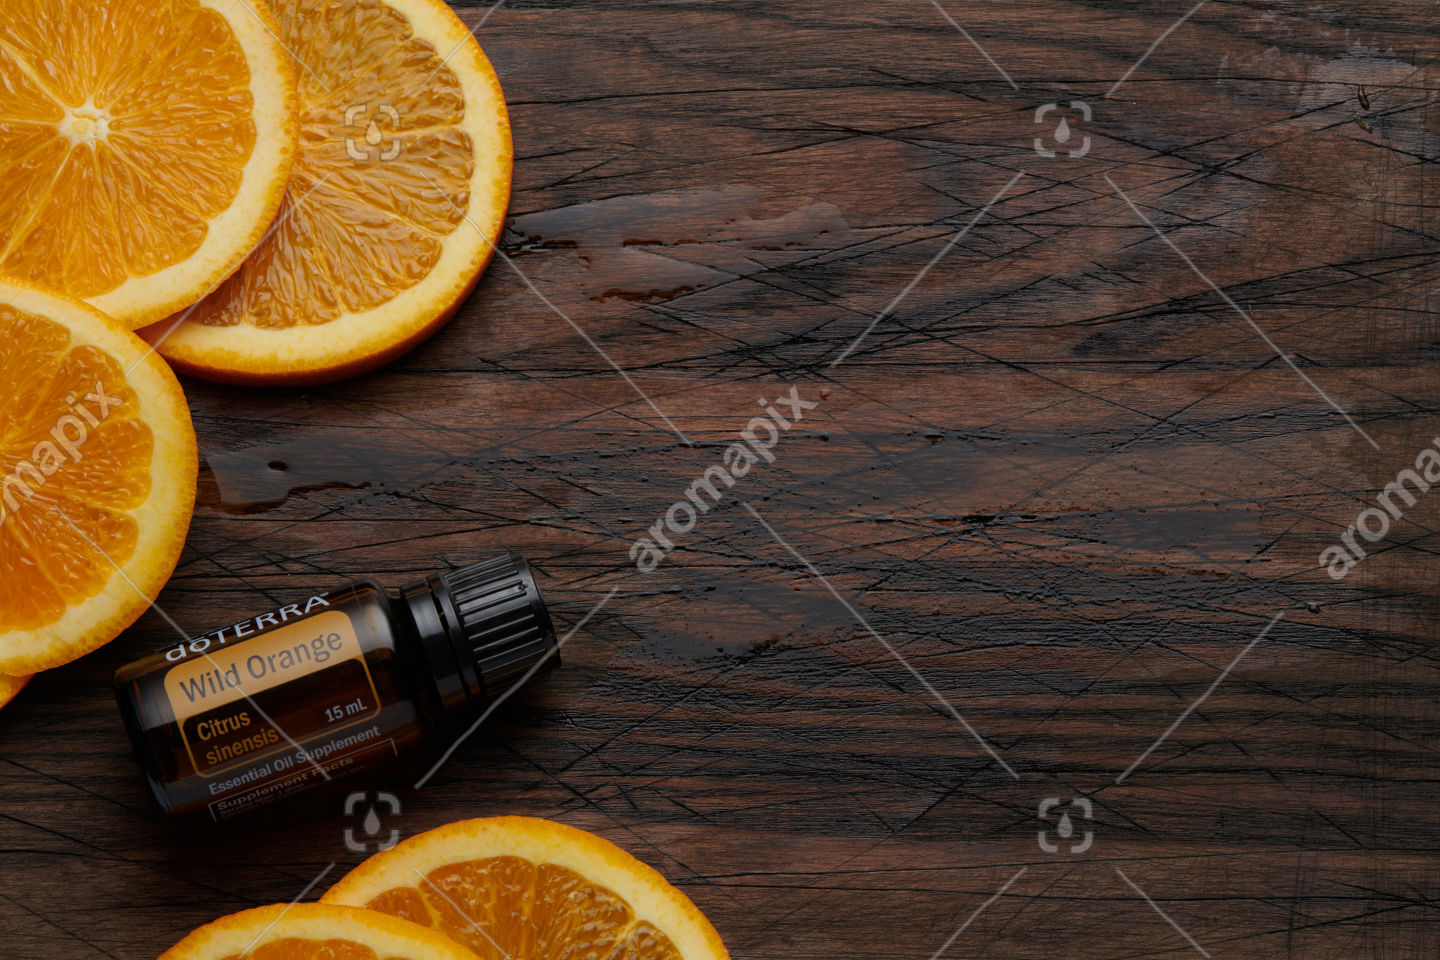 doTERRA Wild Orange product and orange slices on wooden board